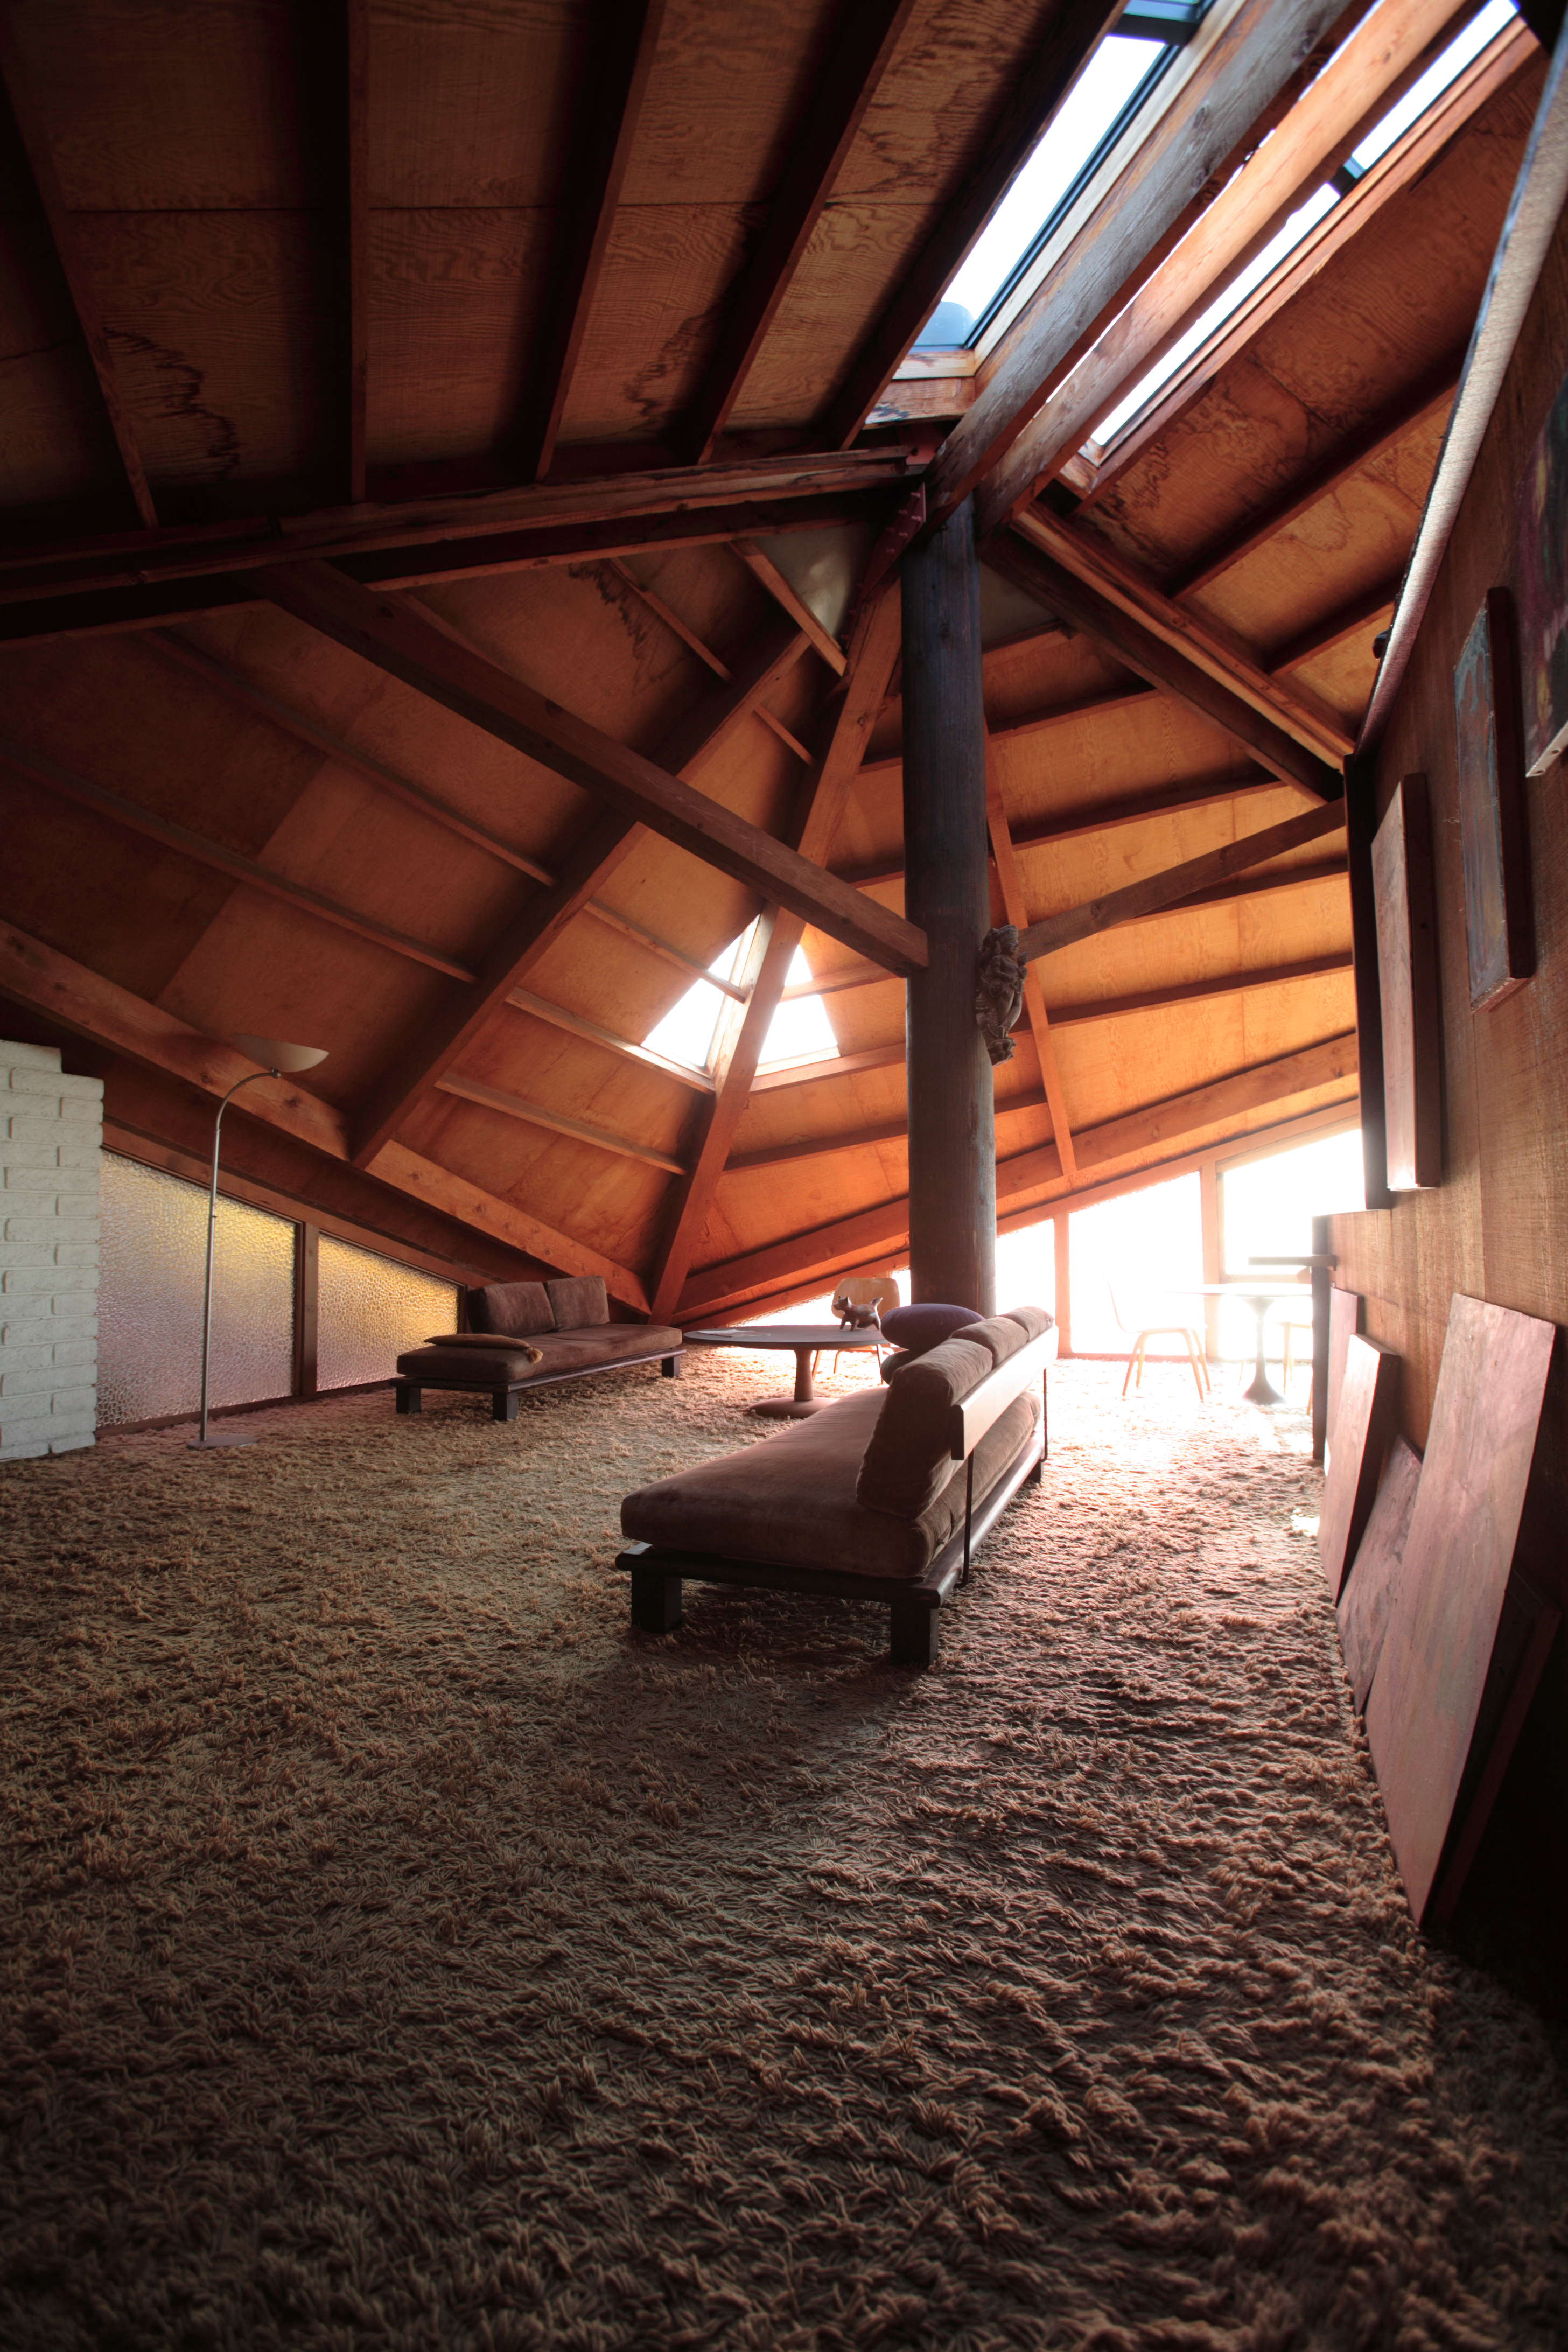 An interior view of the clamshell house.